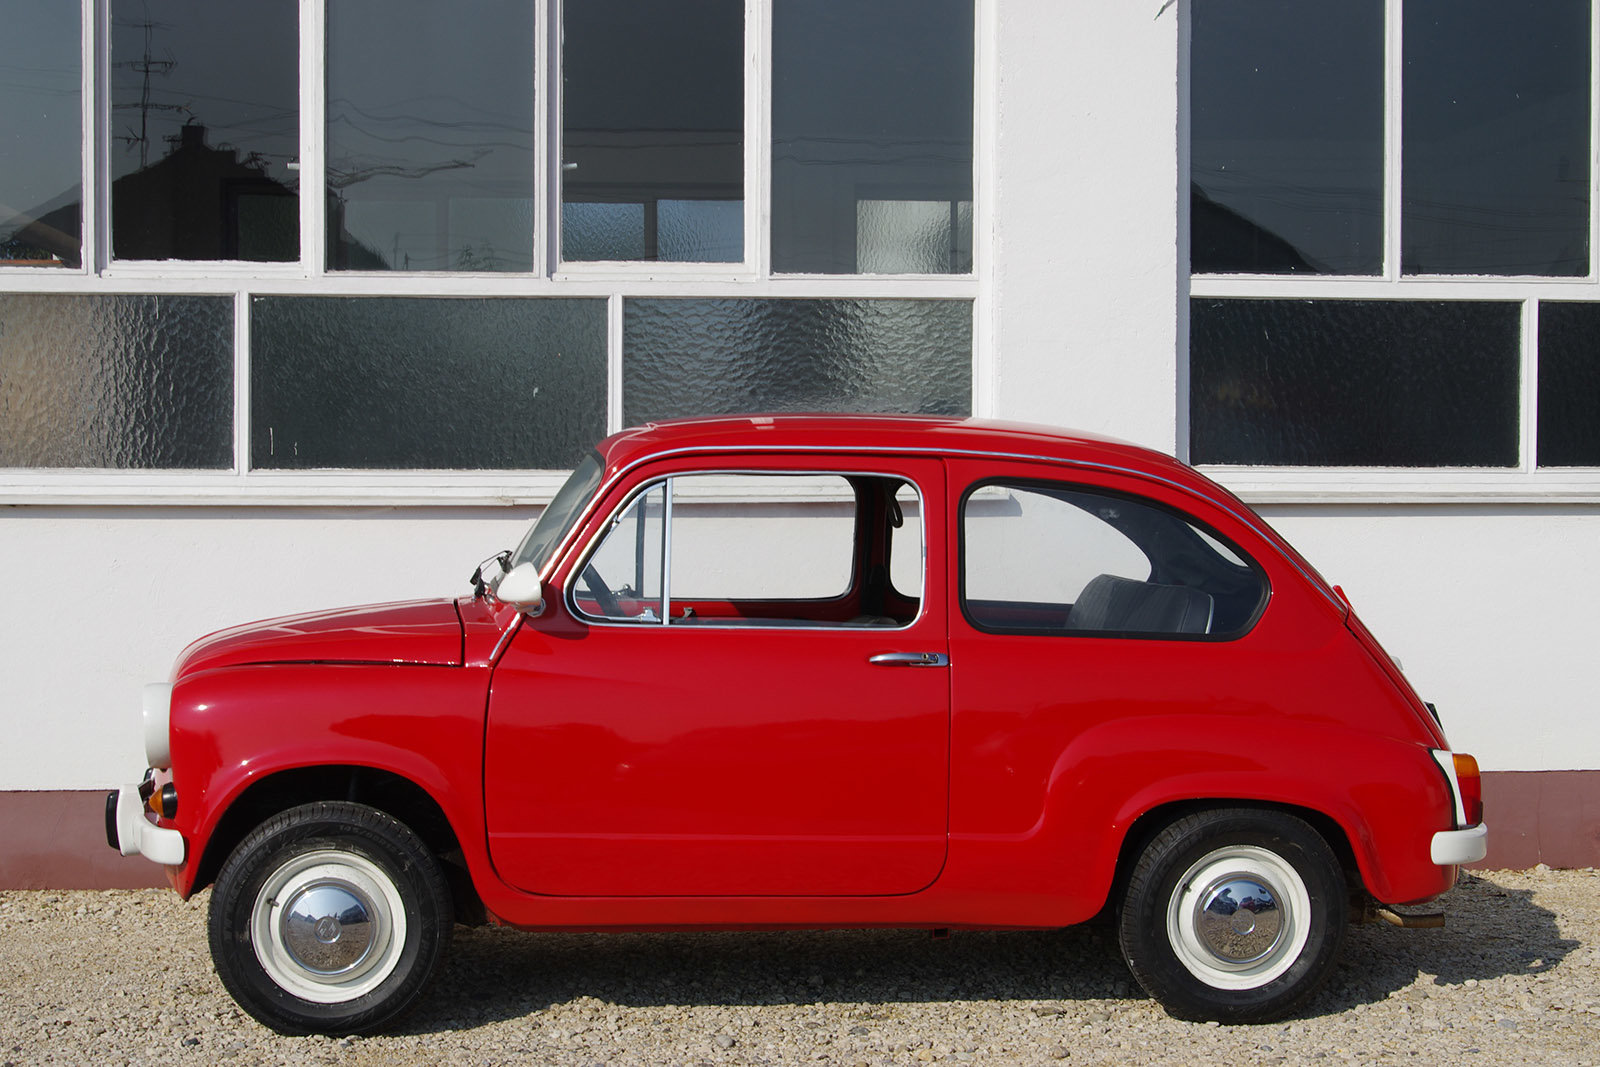 1983 Zastava 750 partially restored - German registration For Sale (picture 1 of 6)